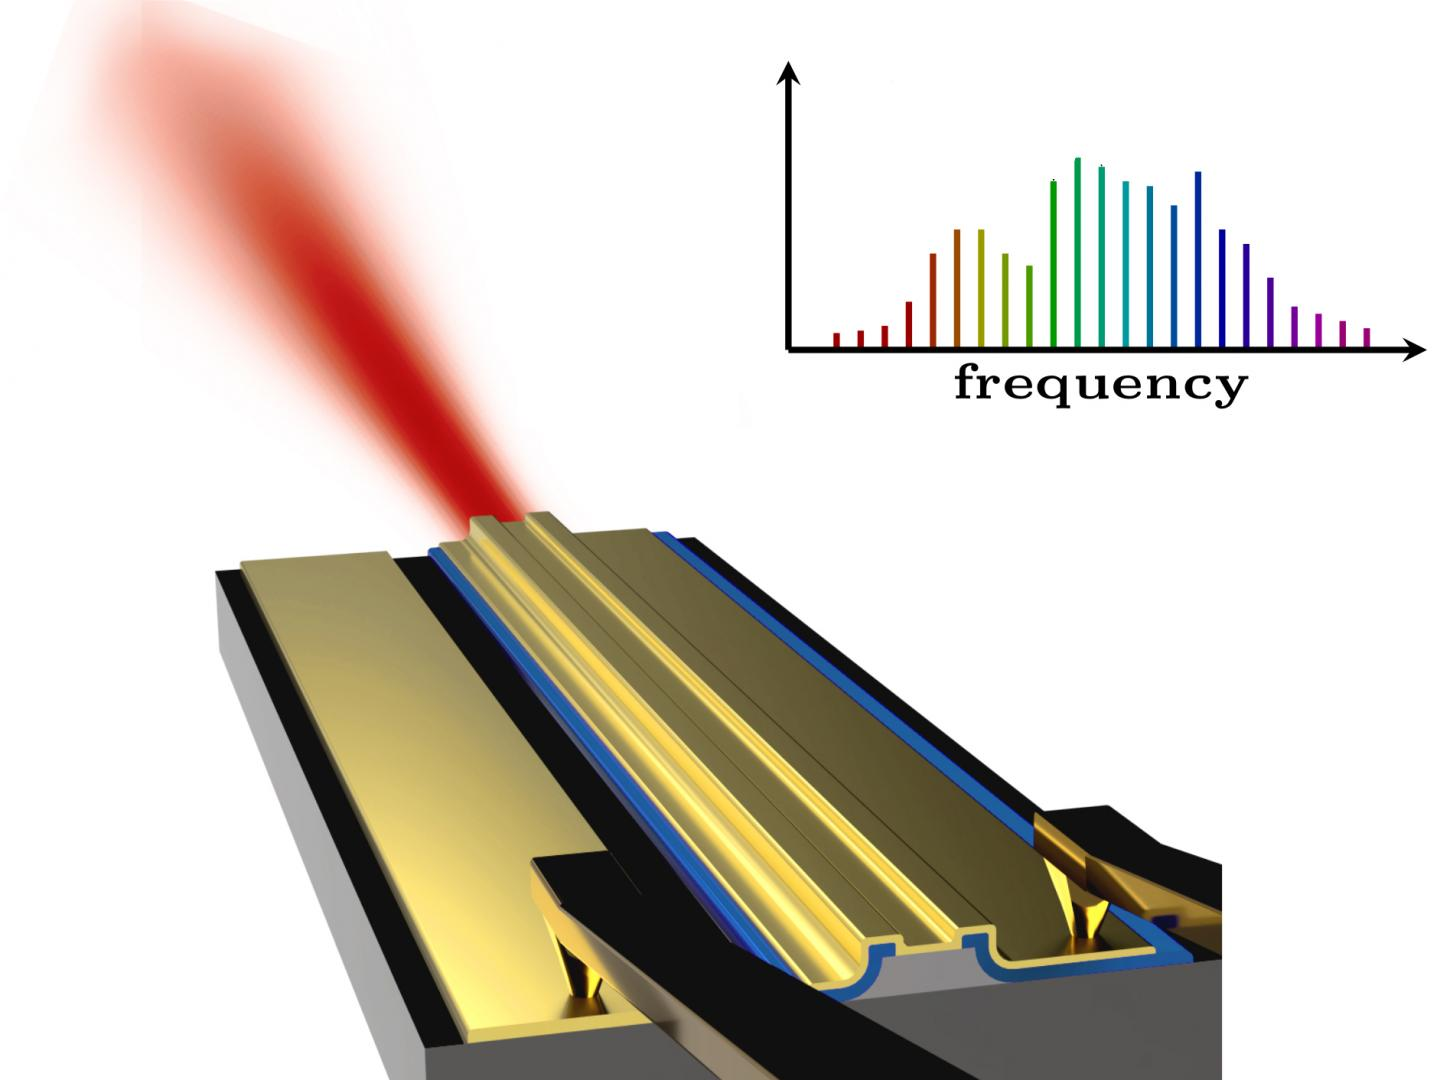 The laser system developed at TU Wien creates many frequencies with equal spacing between them. Courtesy of TU Wien.